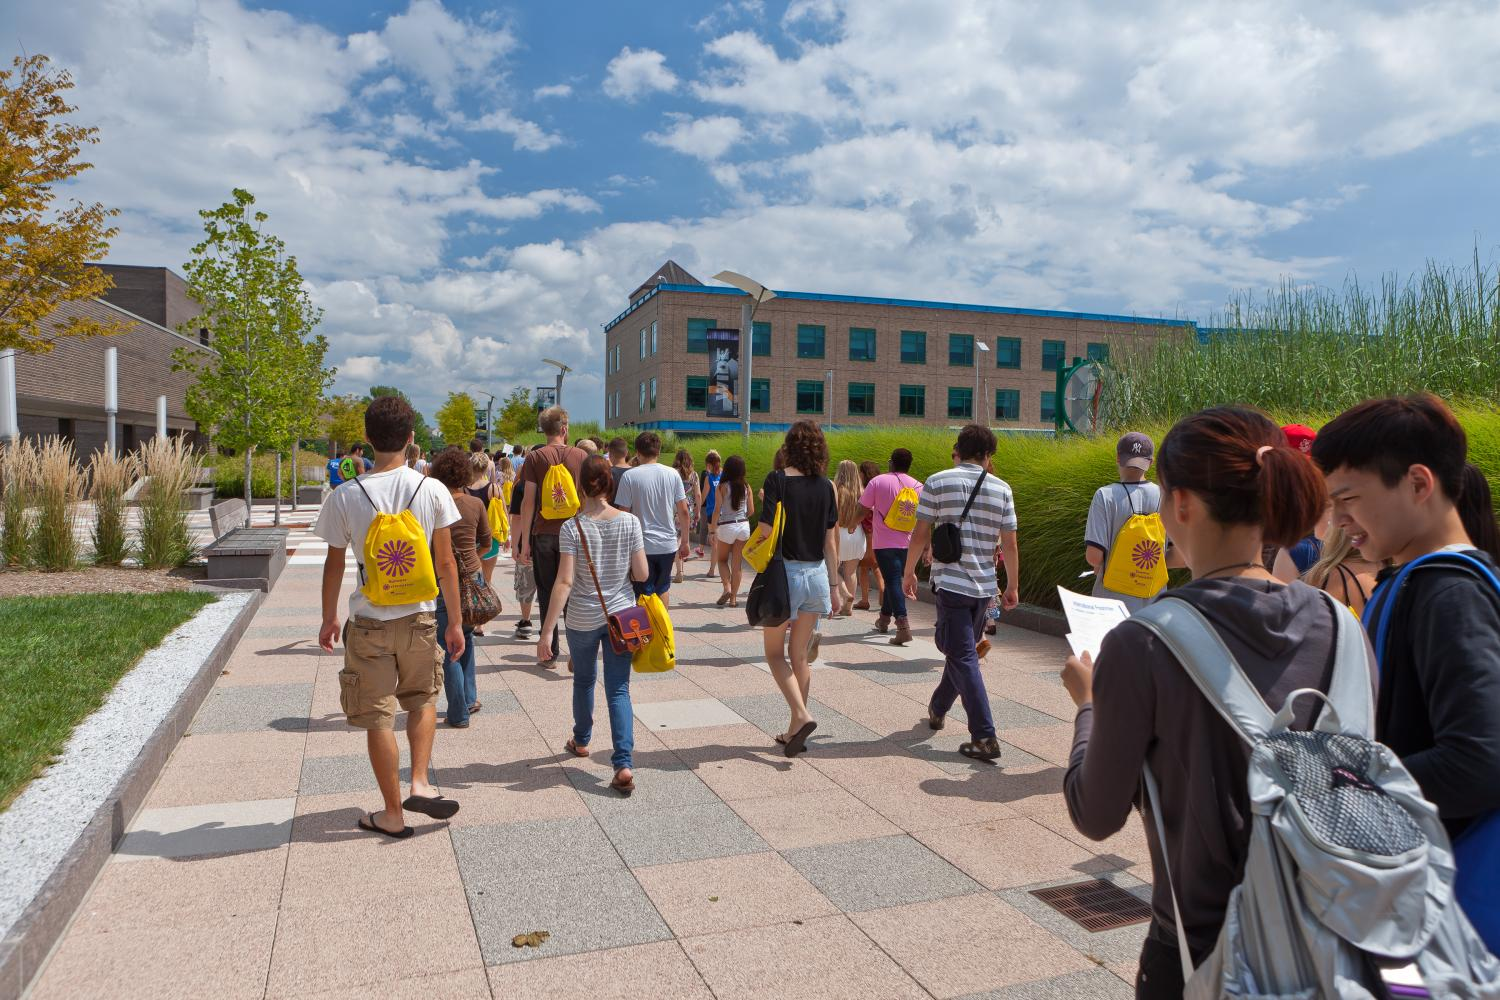 Walking+around+together%2C+new+college+students+take+a+tour+of+their+school%27s+campus.+Tours+and+orientations+help+students+get+ready+for+their+college+experience.